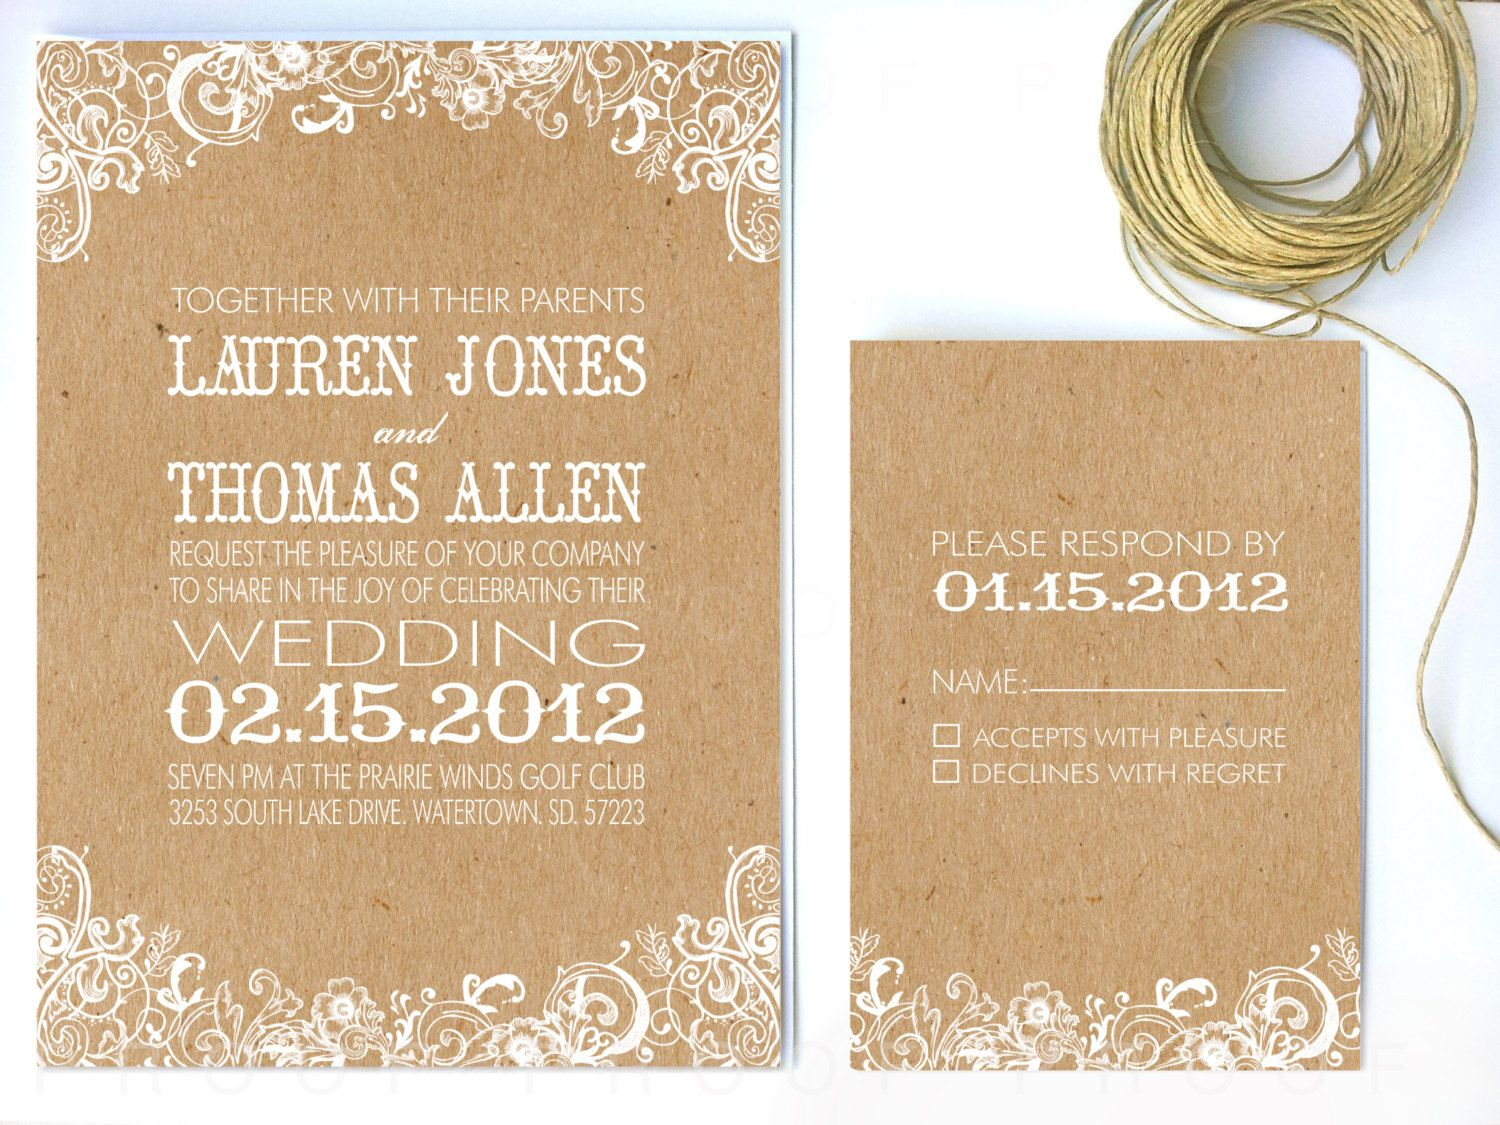 White Ink Kraft Paper Wedding Invitation Invitations And Printed Materials Pinterest Weddings